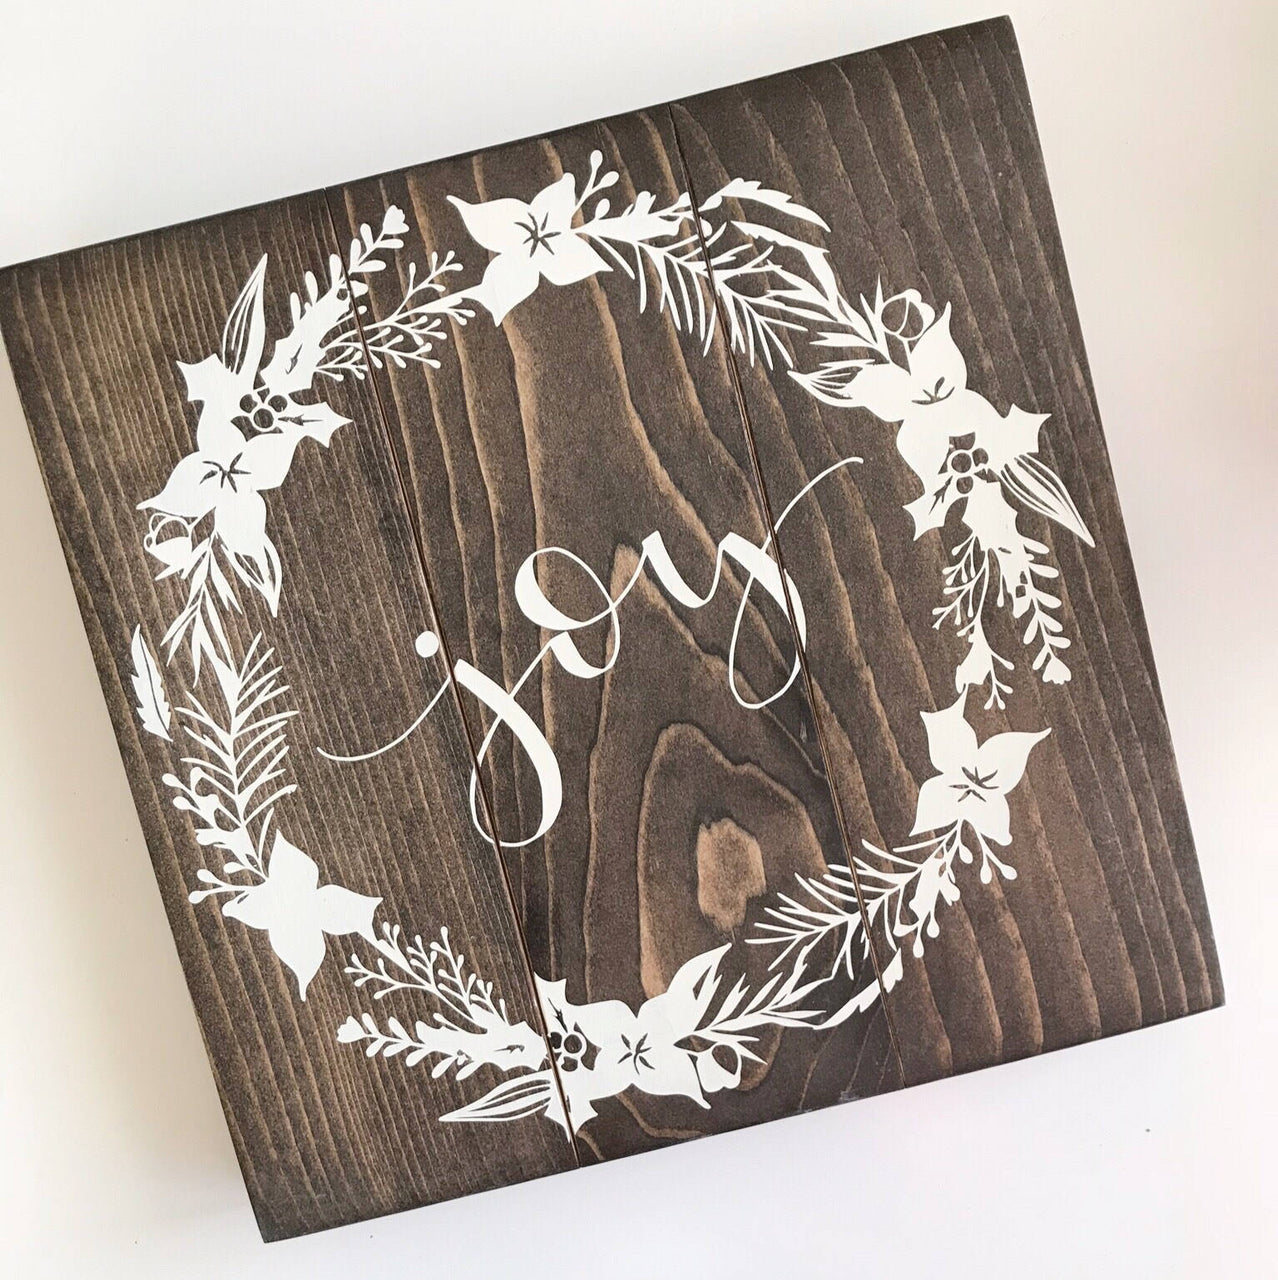 Joy Holiday Sign, Holiday Decor, Christmas Decor, Christmas Gift, Modern Xmas, Holiday Joy Sign, Joy Sign, Christmas Sign, Christmas Wall Ar